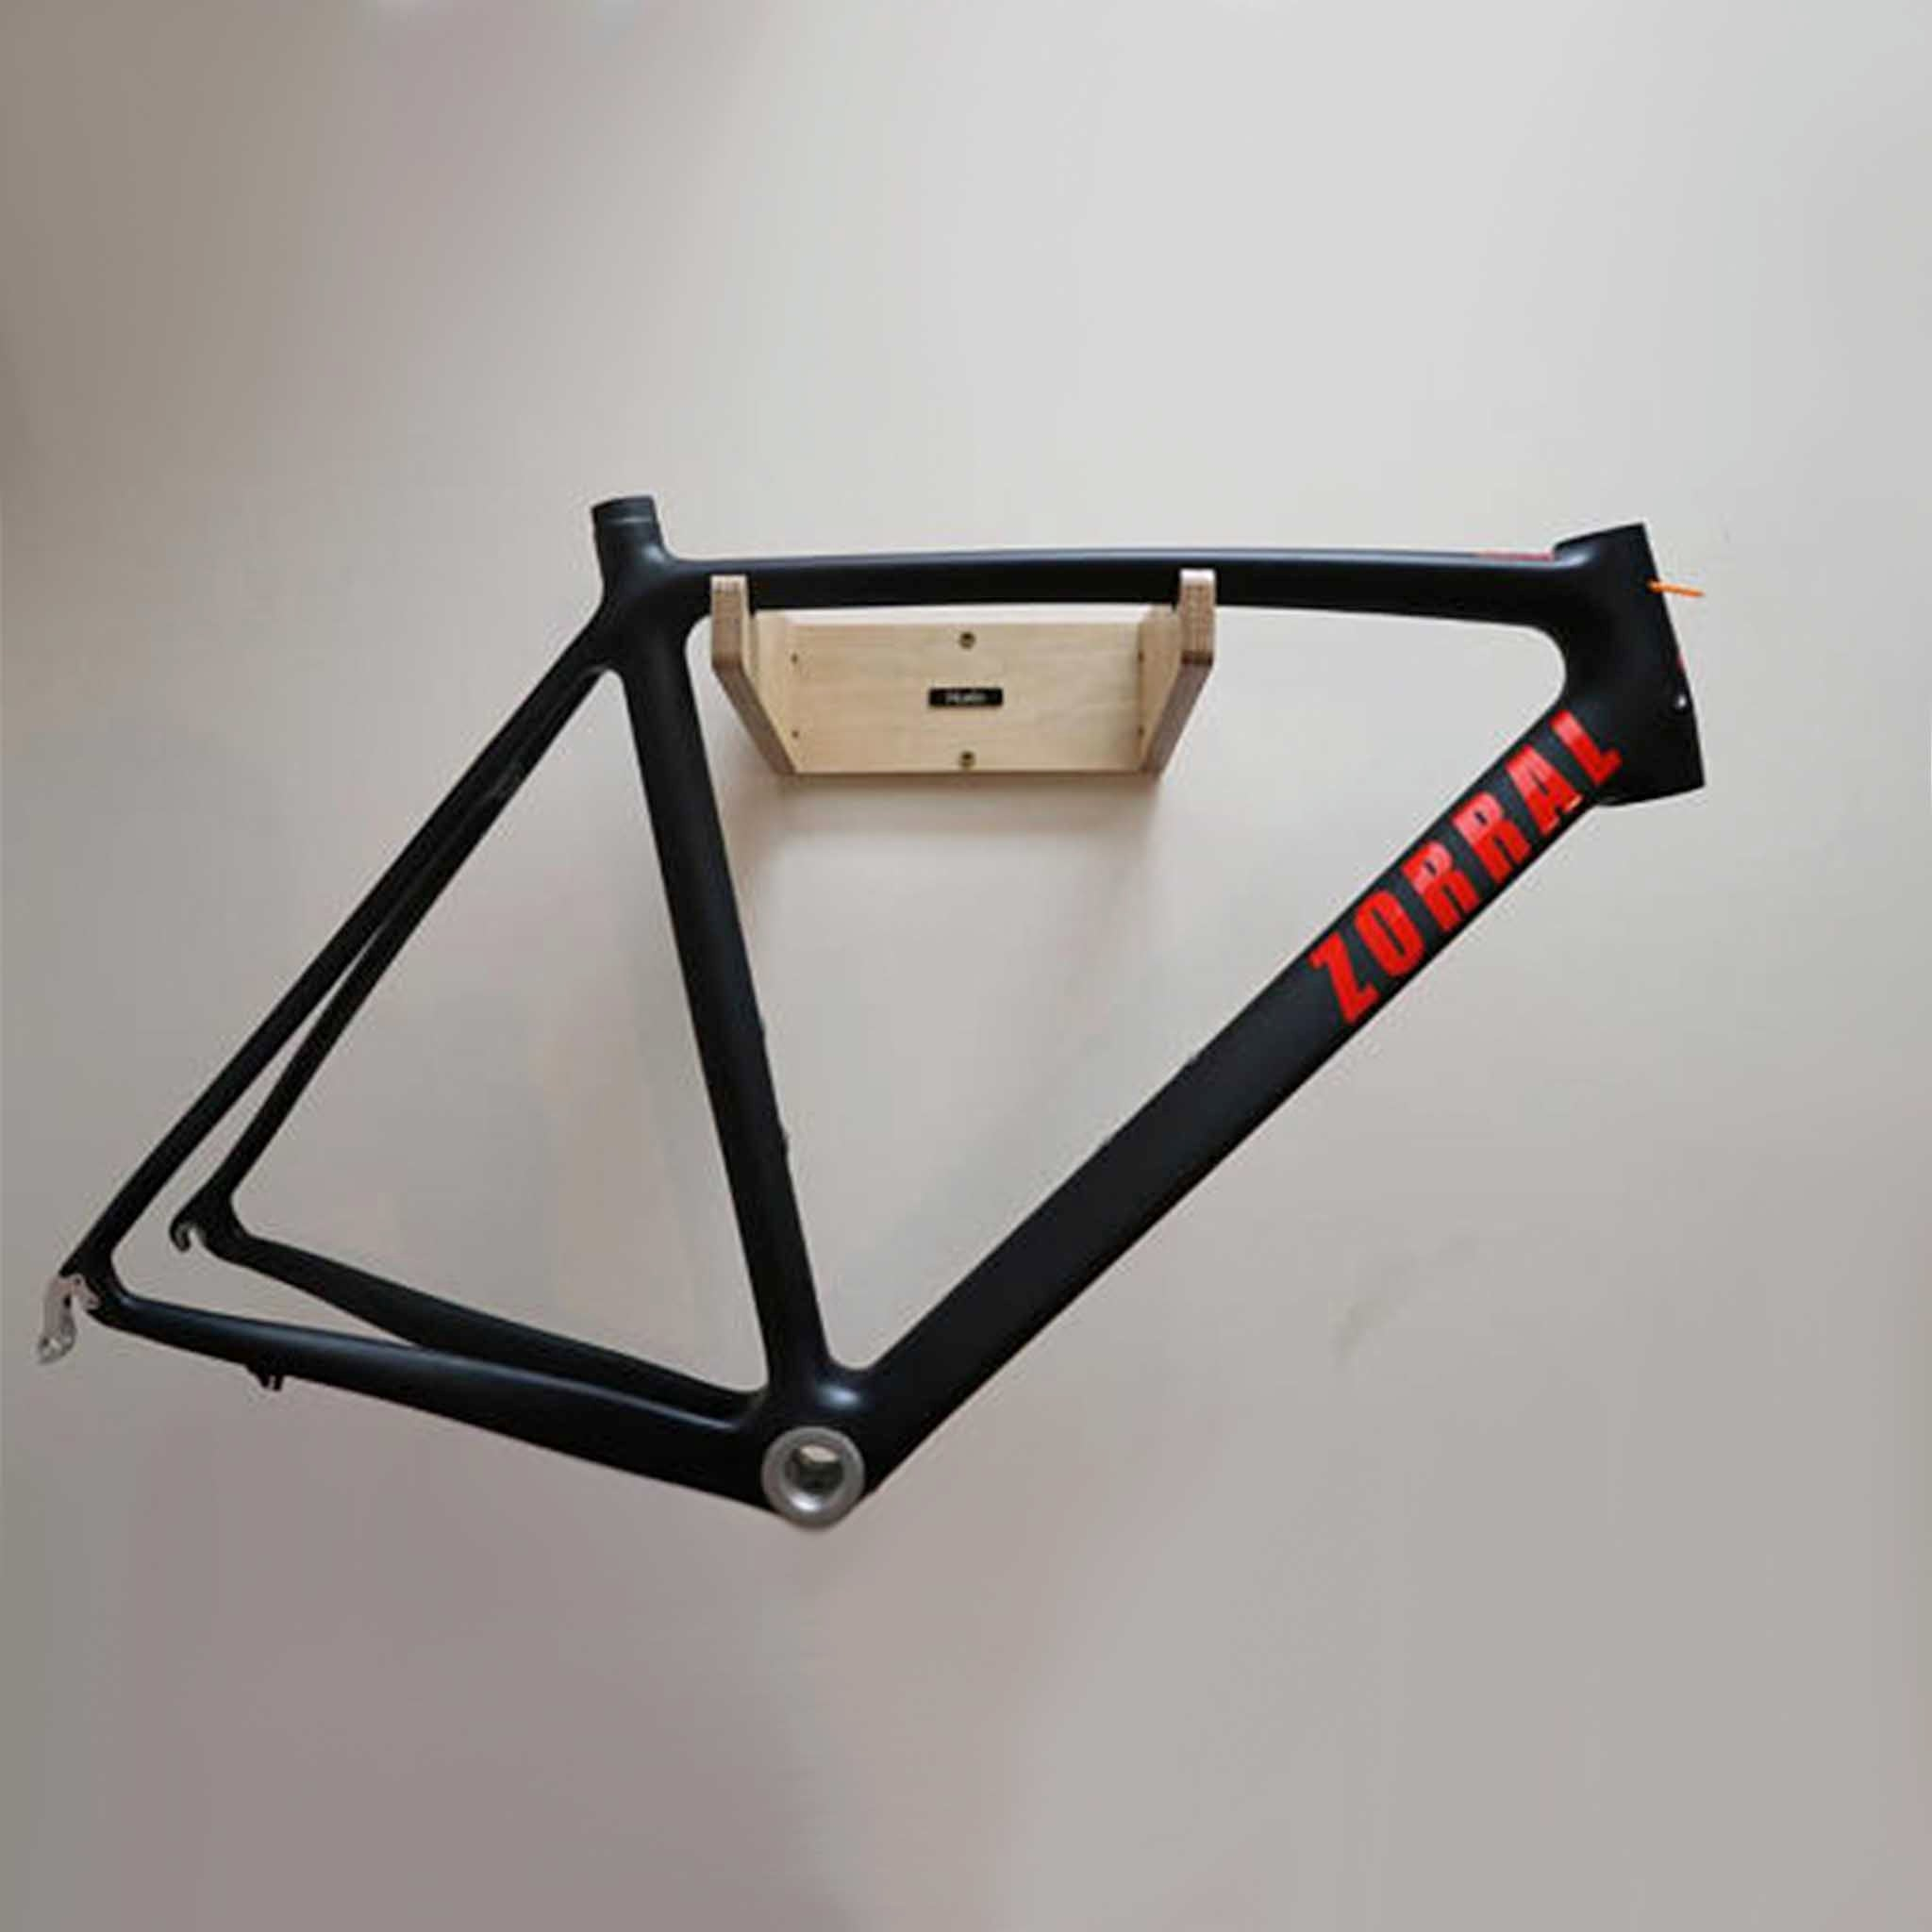 x inspiring with up com mount basket along bike w horizontal gear vertical for texnoklimat awesome ideas rack wall